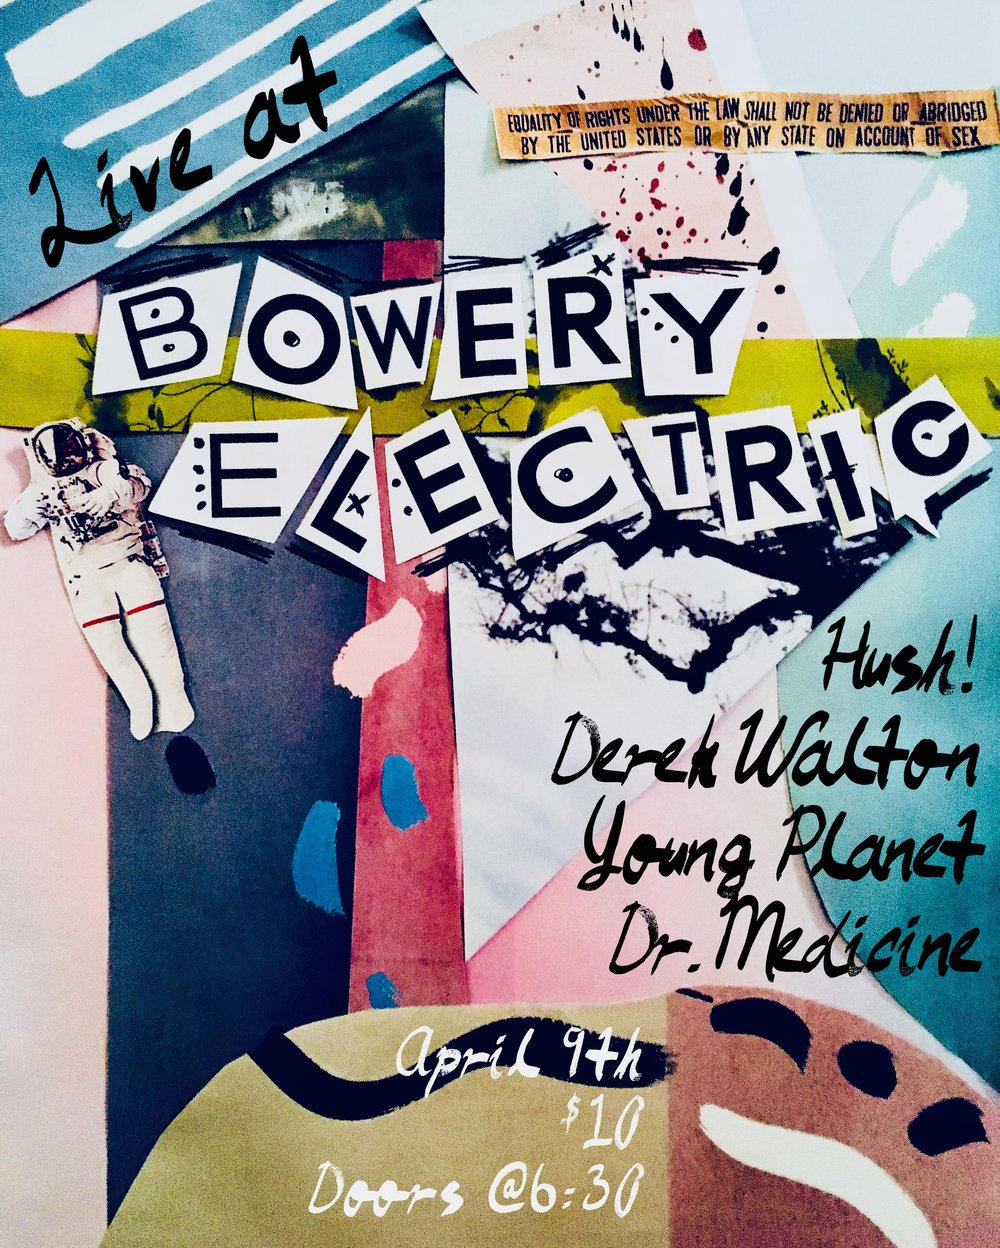 04/09/2018 Bowery Electric 10pm